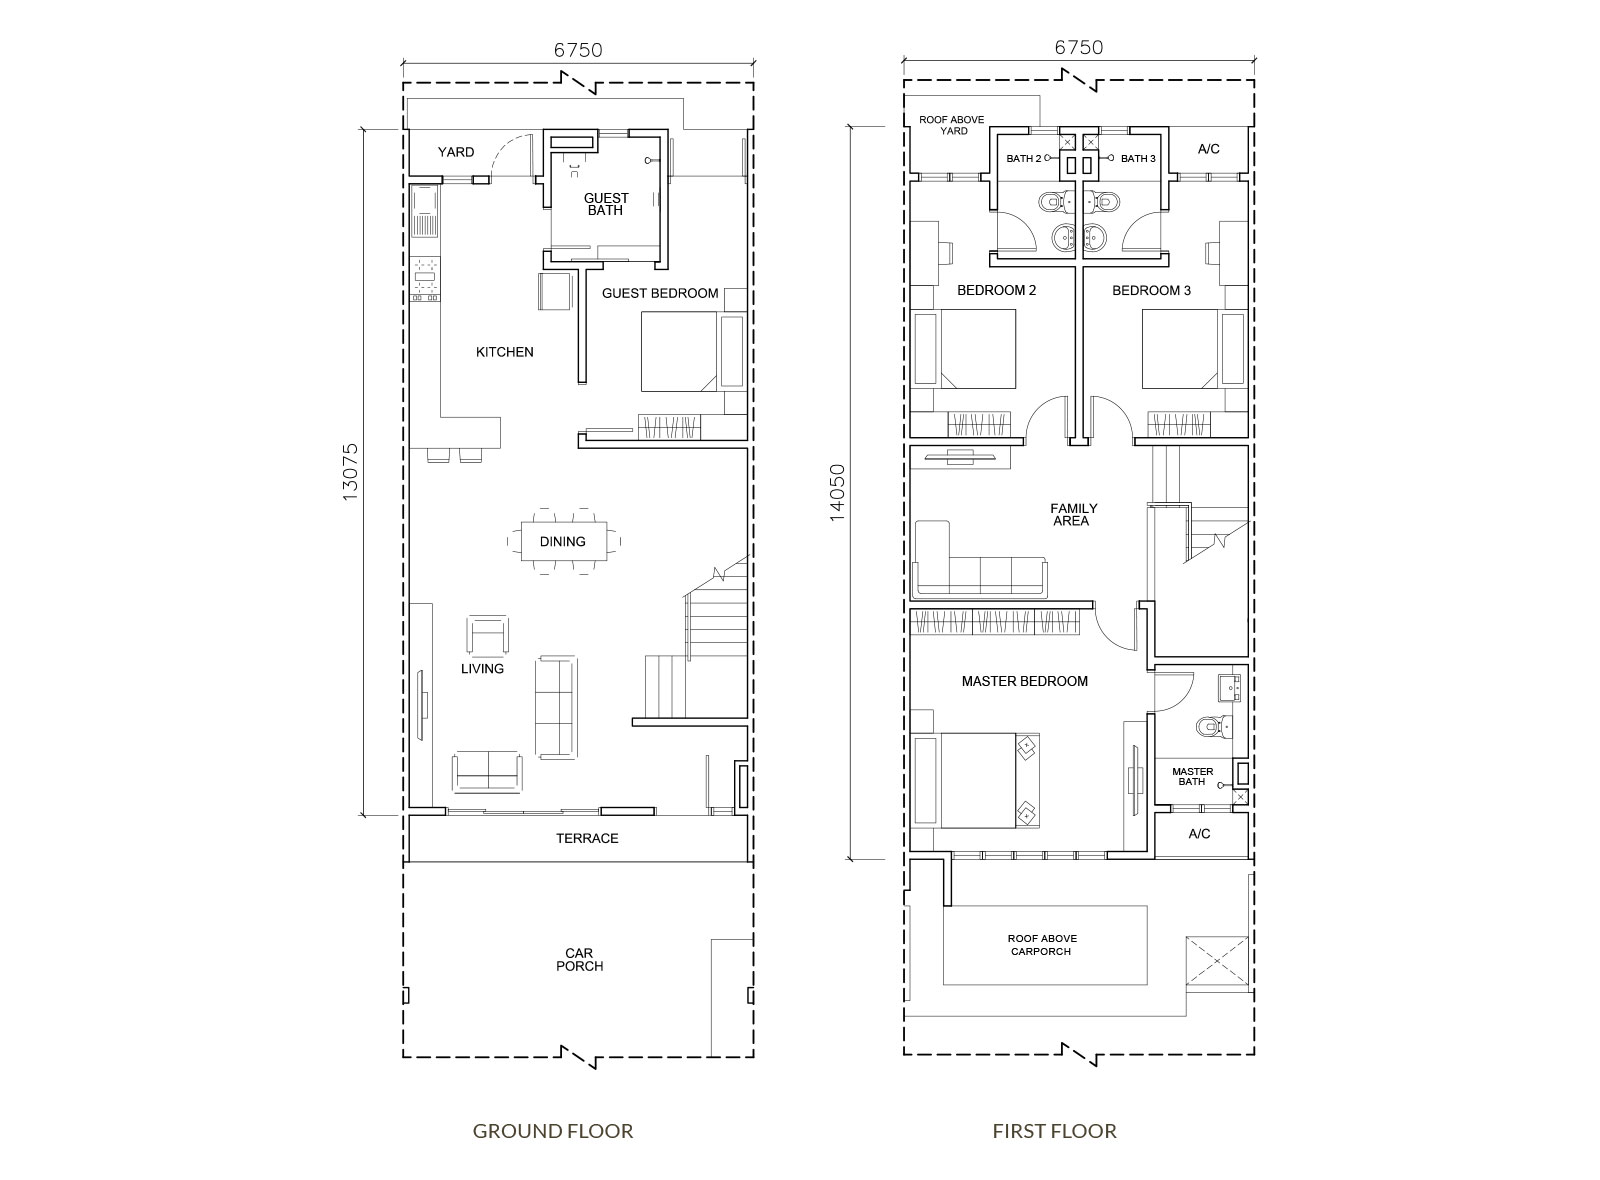 Casira 2 sime darby property for Floor plan cost estimator